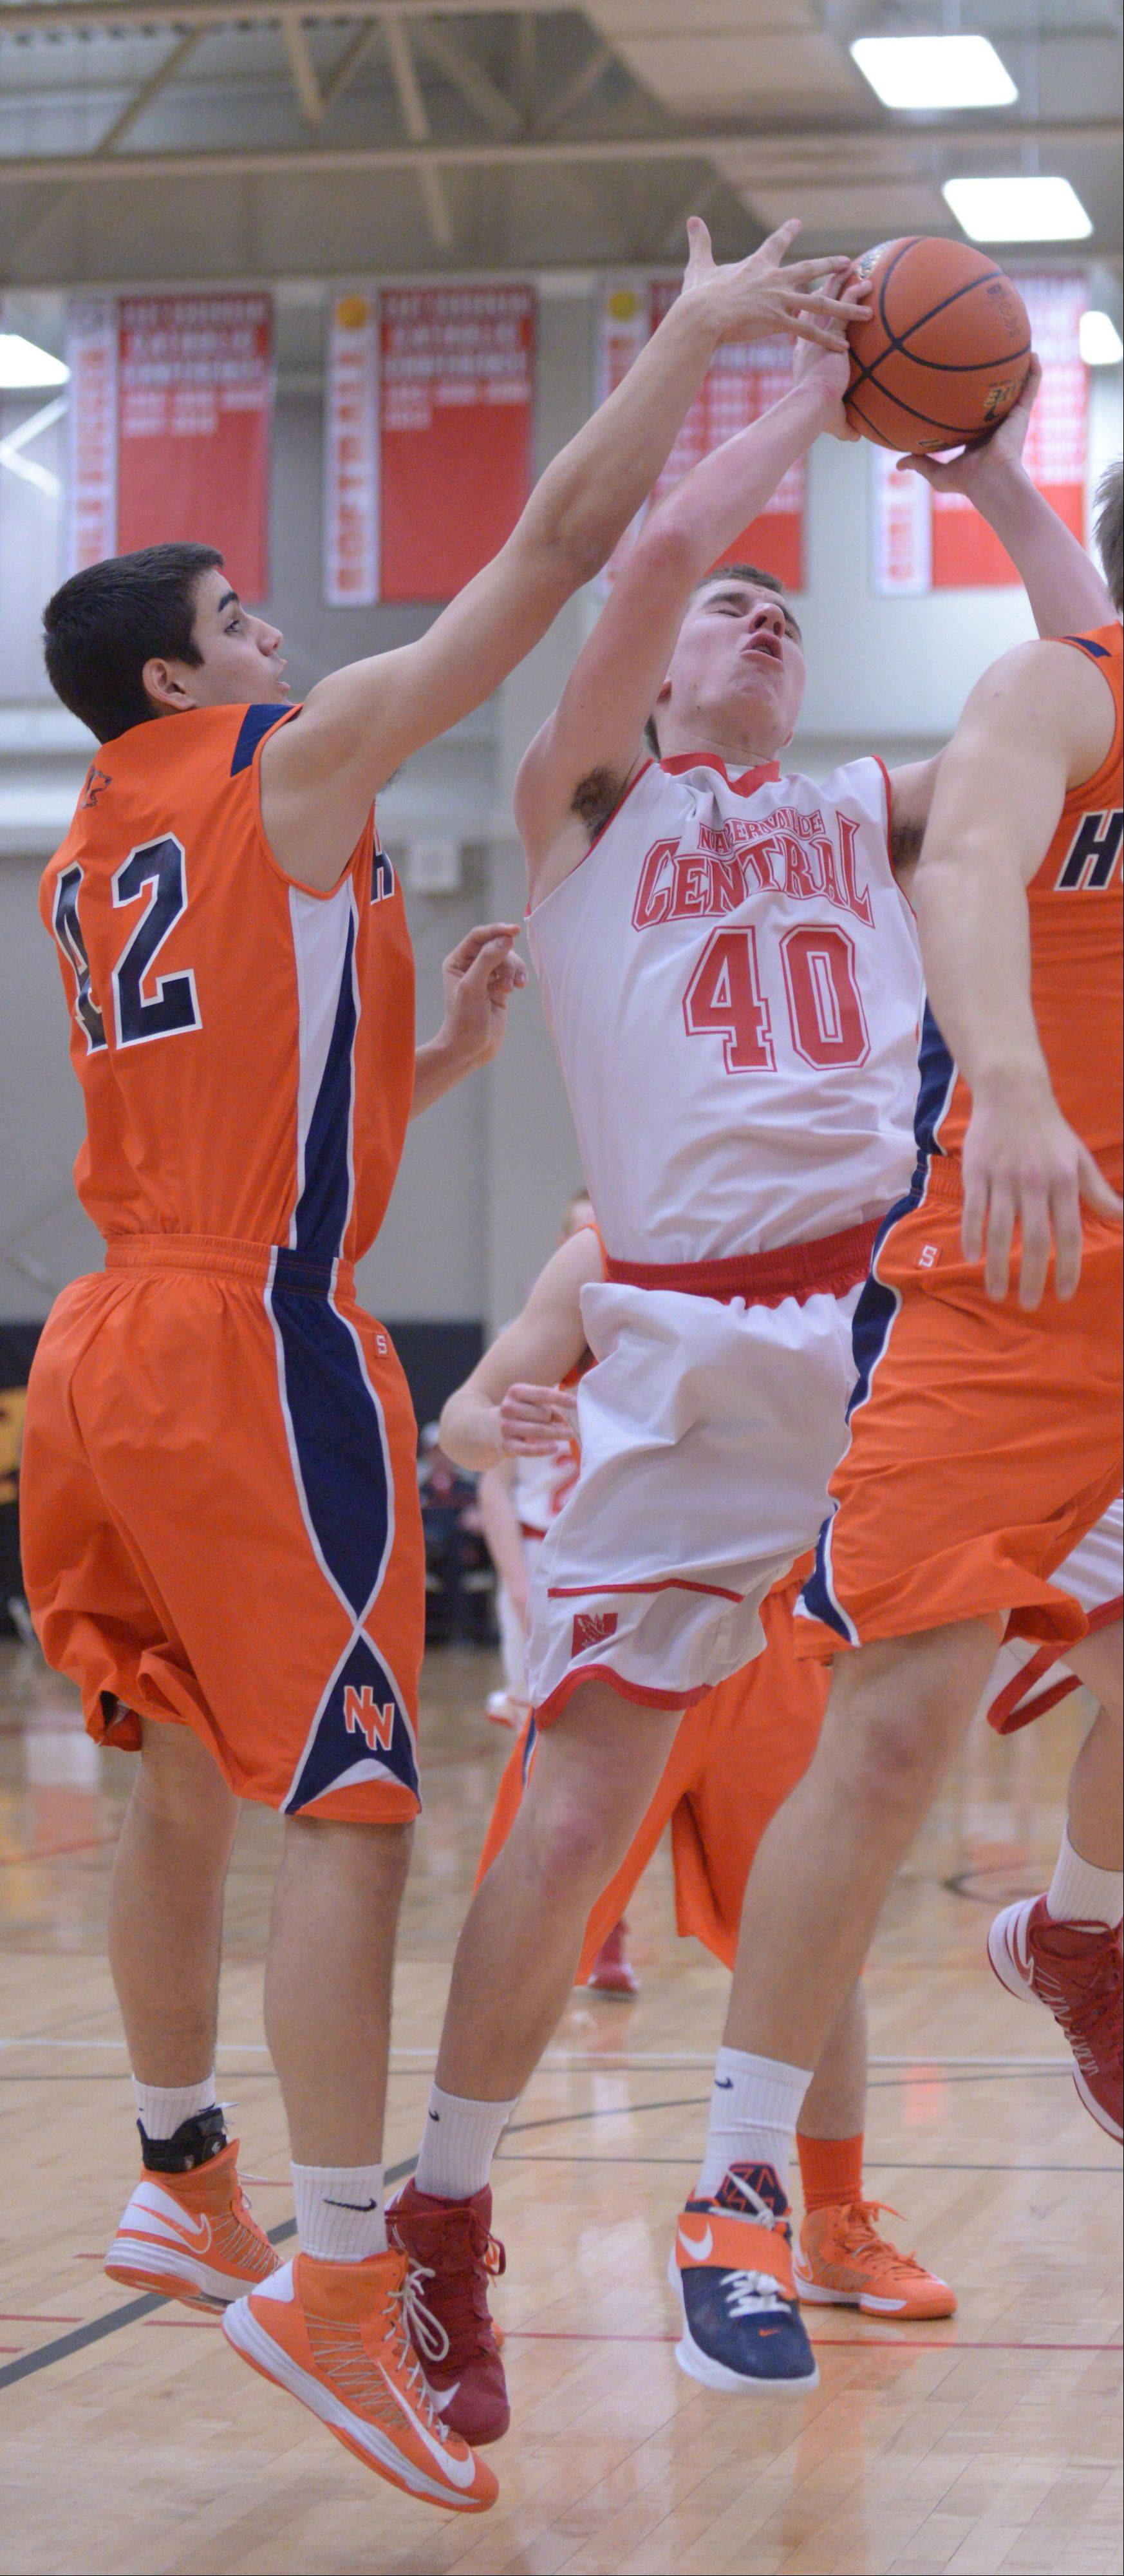 Rafee Mahmud of Naperville North and Patrick Maloney of Naperville Central go for a rebound .